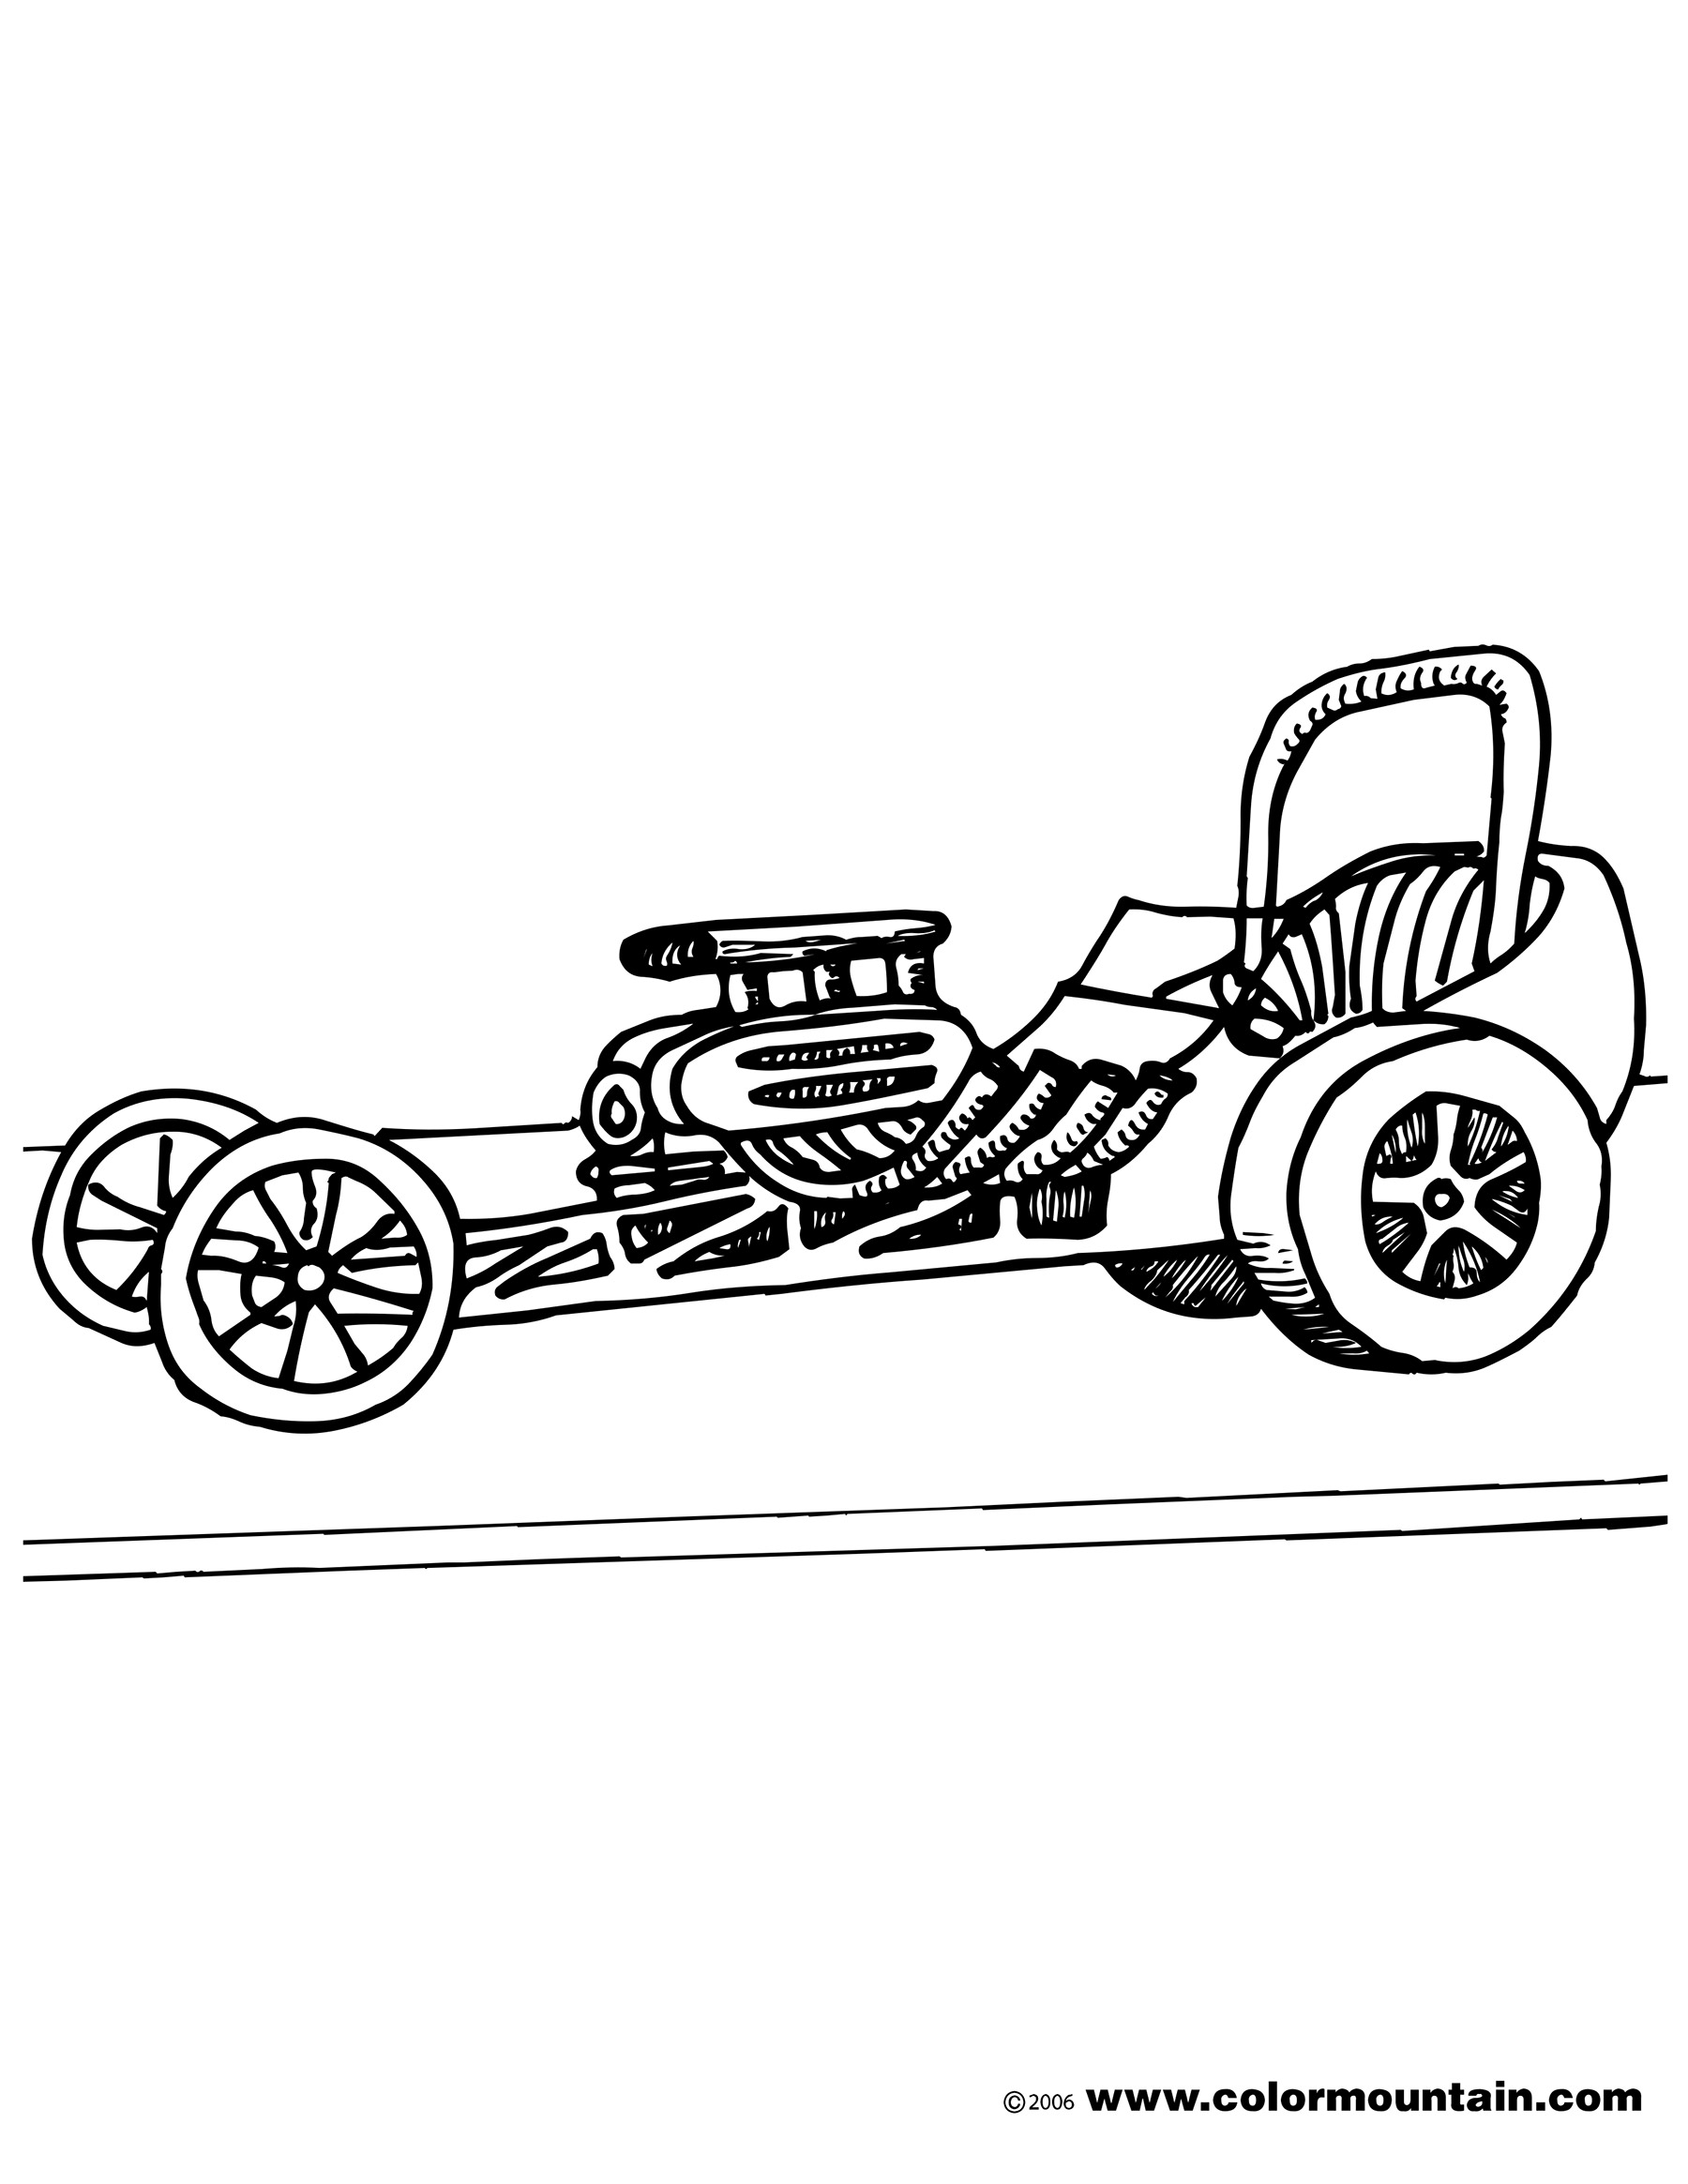 Dragster Coloring Pages At Getcolorings